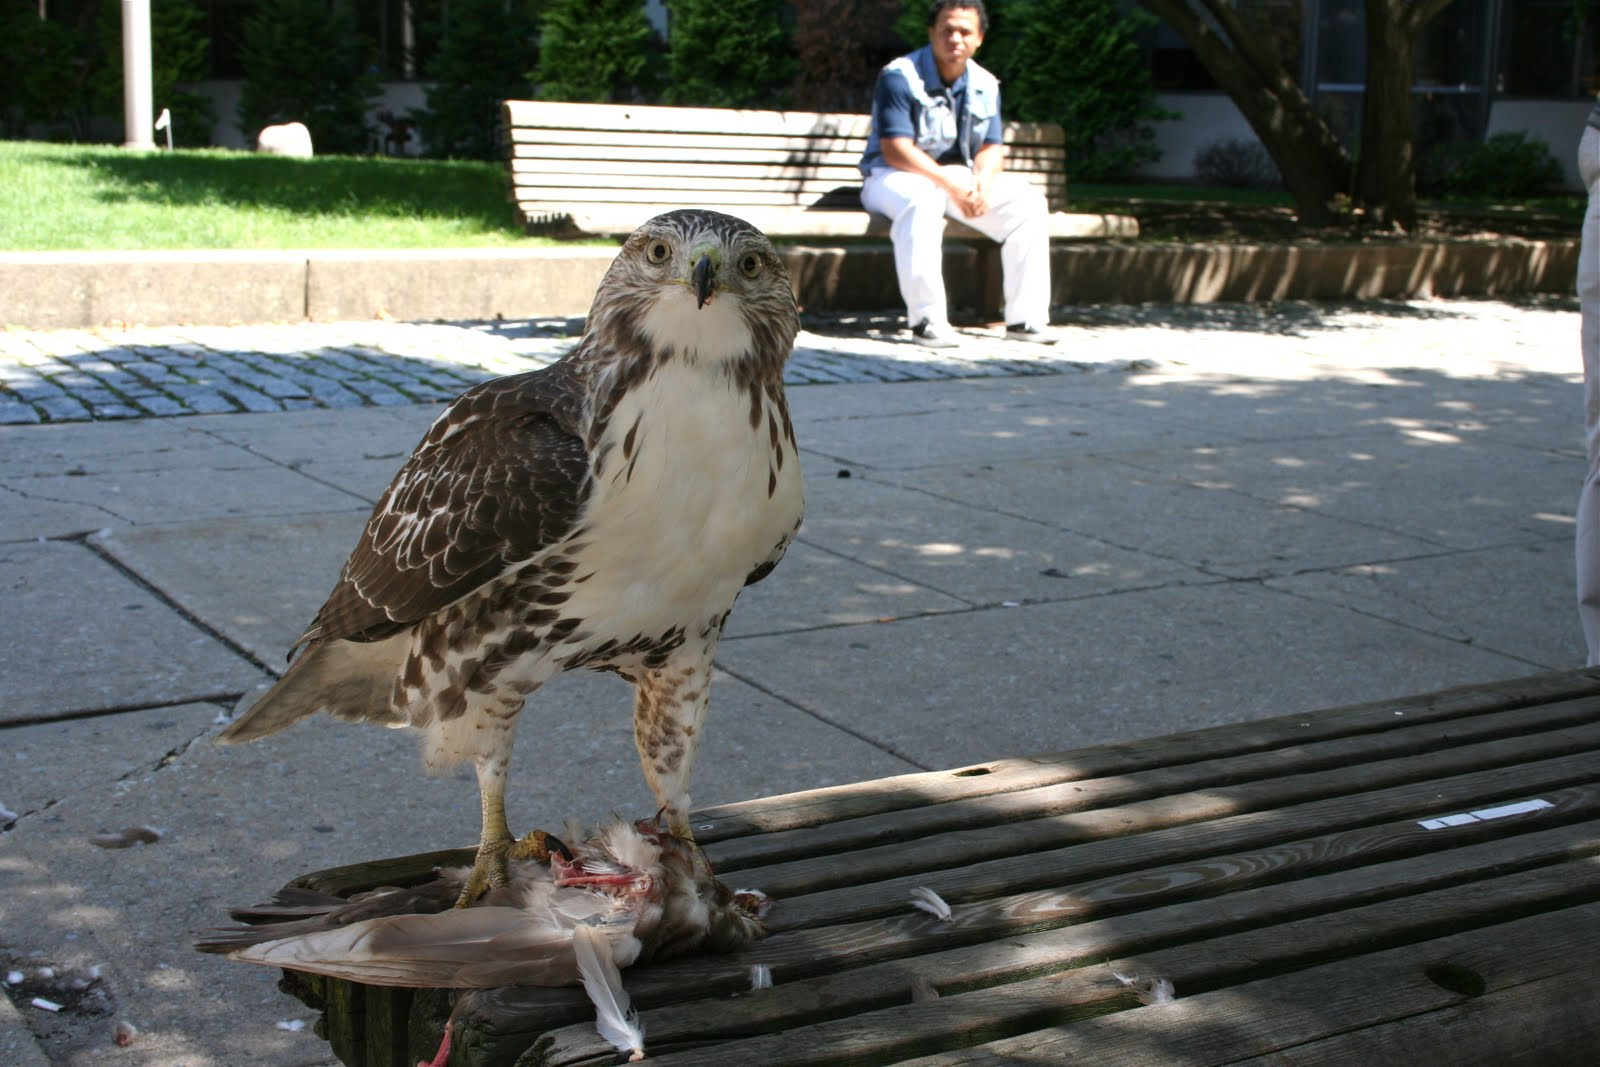 Red-tailed hawk eating pigeon on city bench